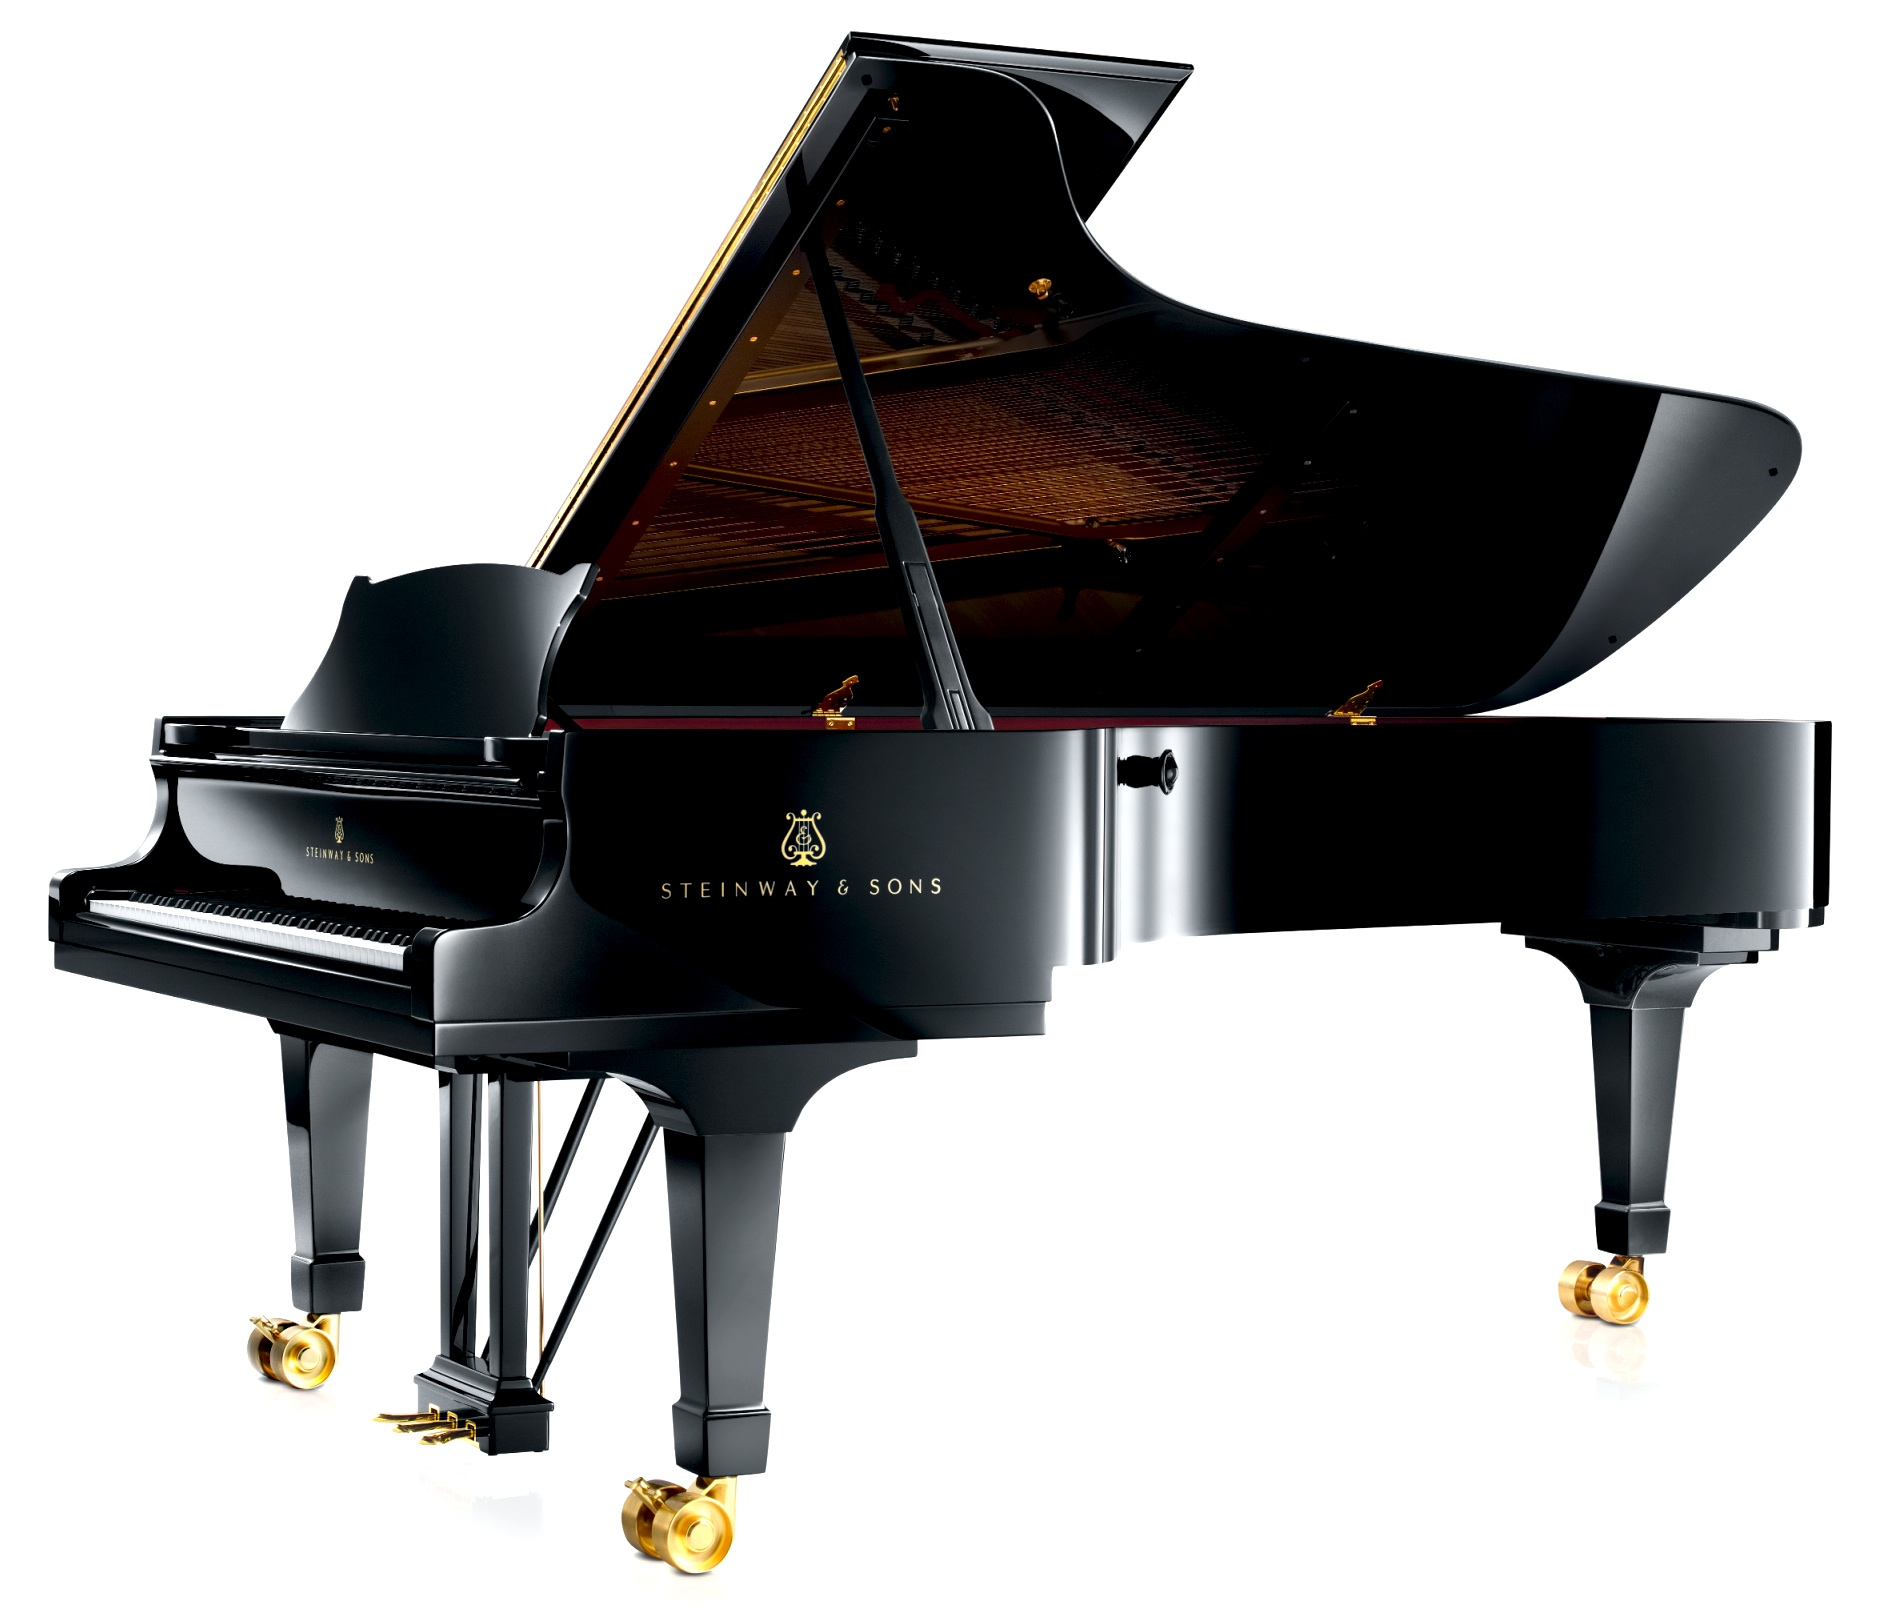 file steinway sons concert grand piano model d 274